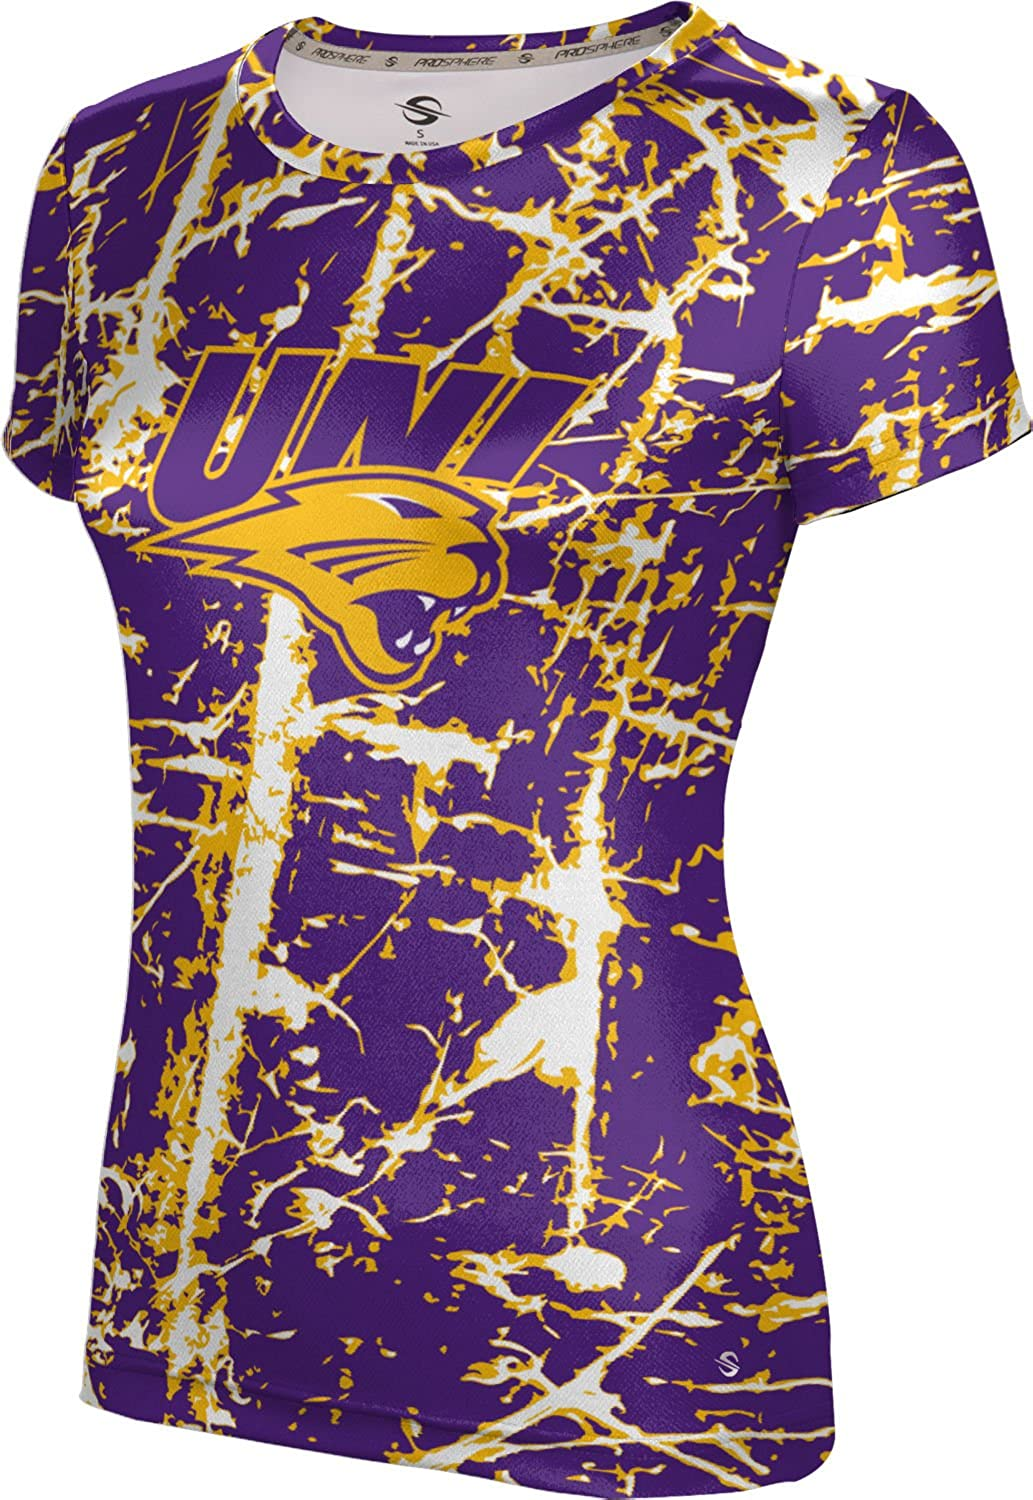 Distressed ProSphere University of Northern Iowa Girls Performance T-Shirt